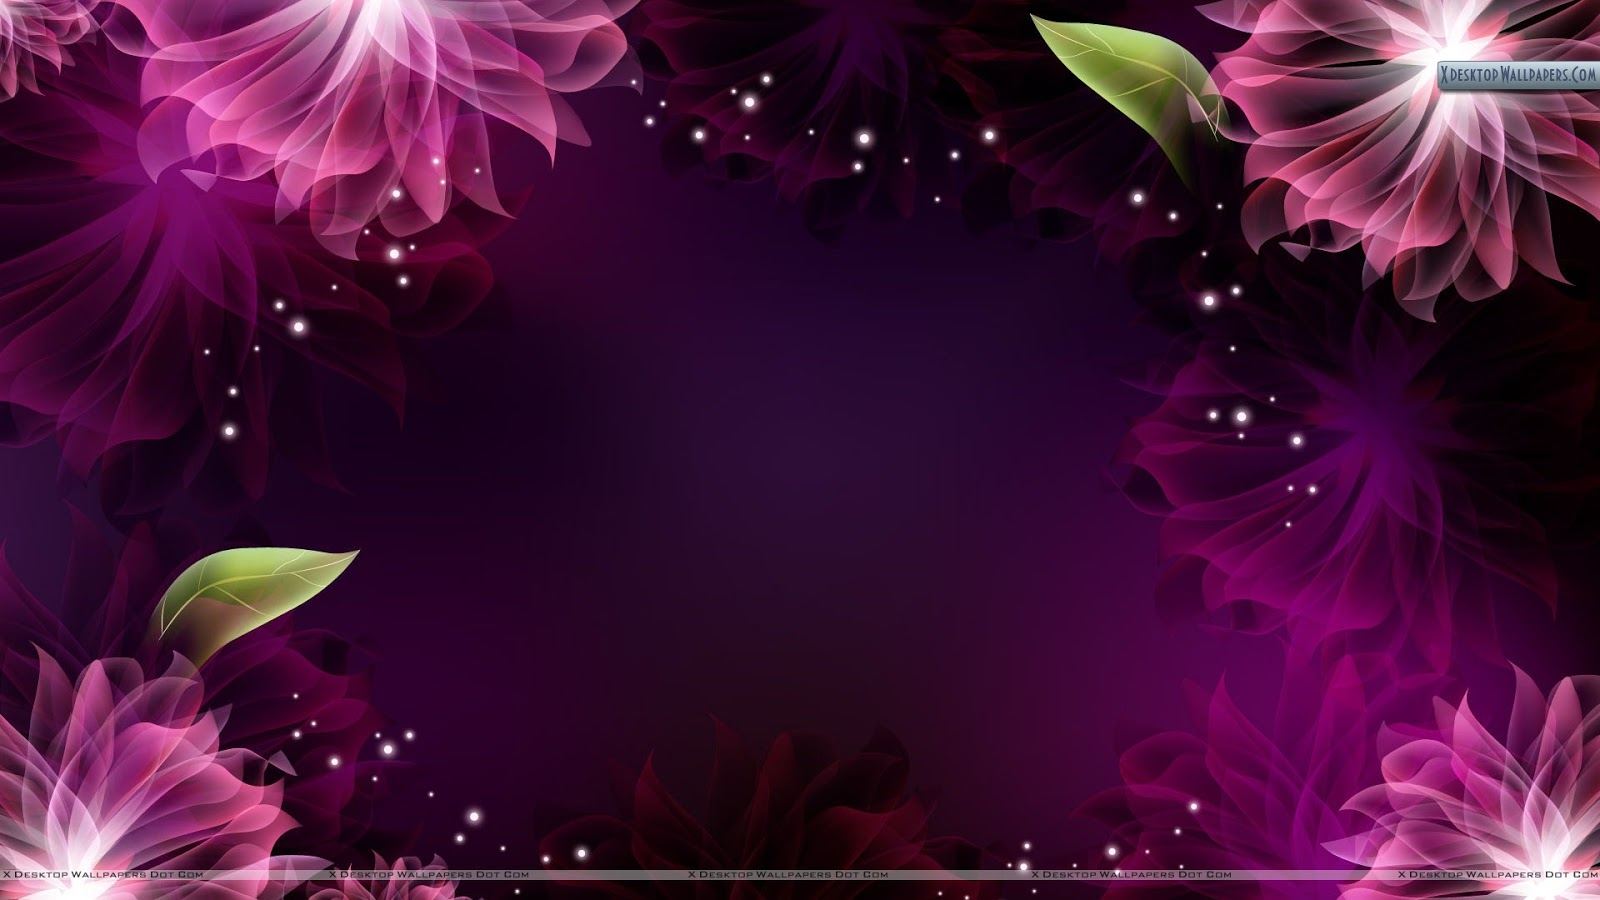 Flowers wallpaper and other Nature desktop backgrounds Get 1600x900